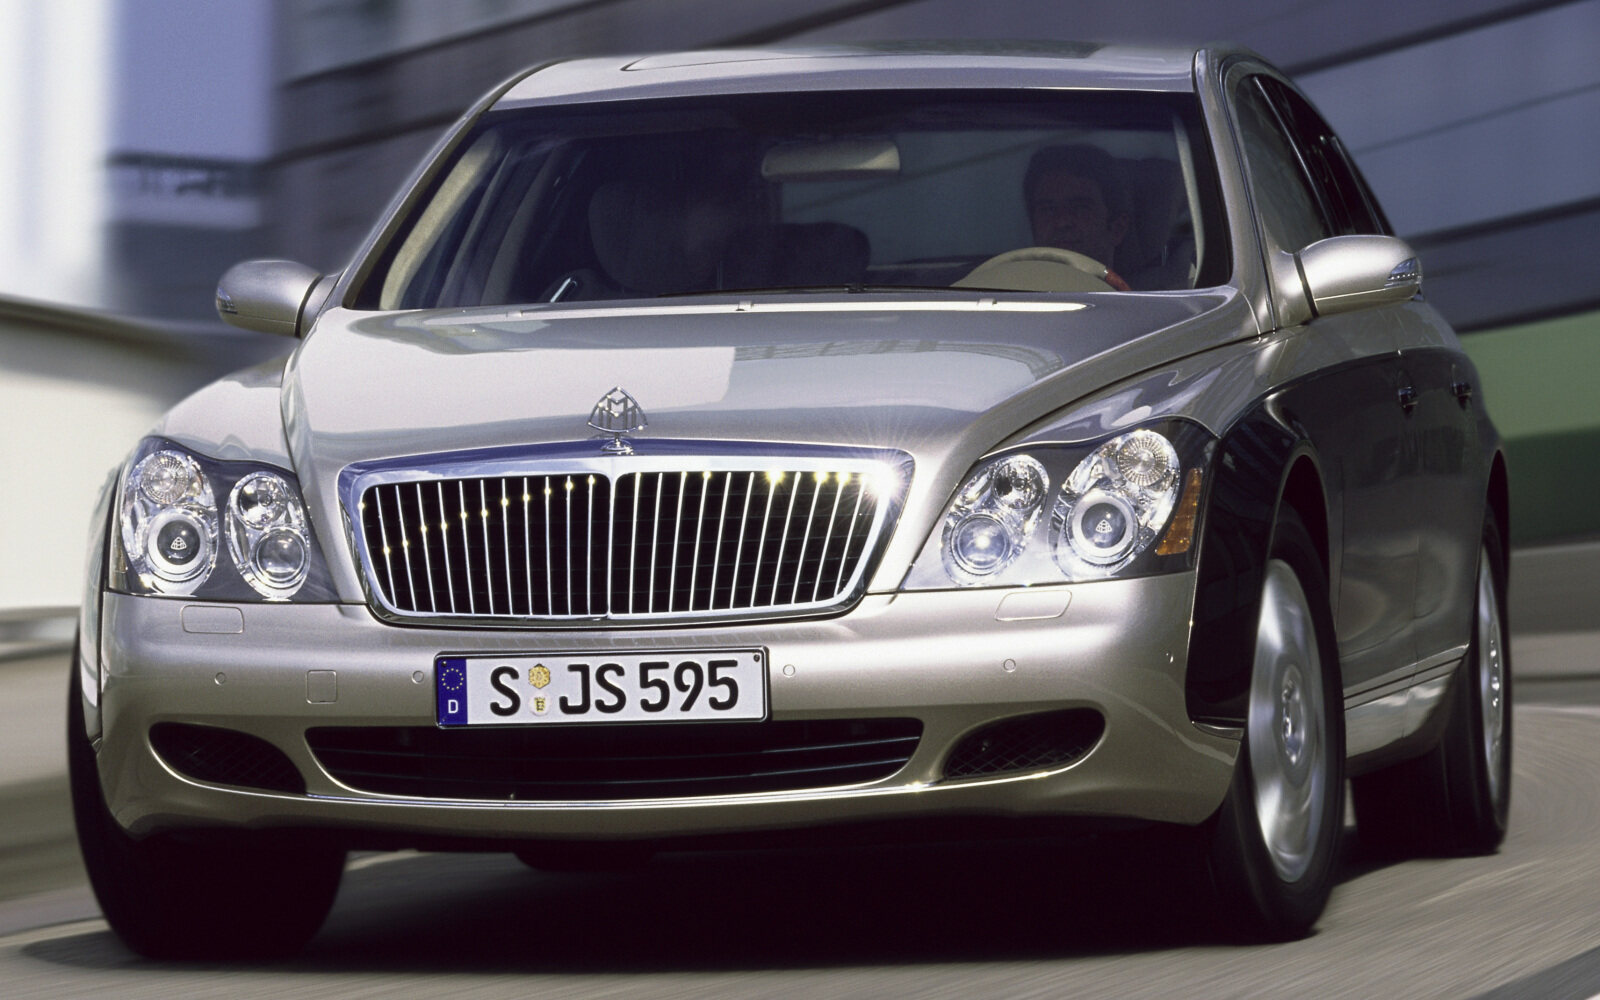 PKW4601 240 series Maybach Saloons, 2002 - 2010